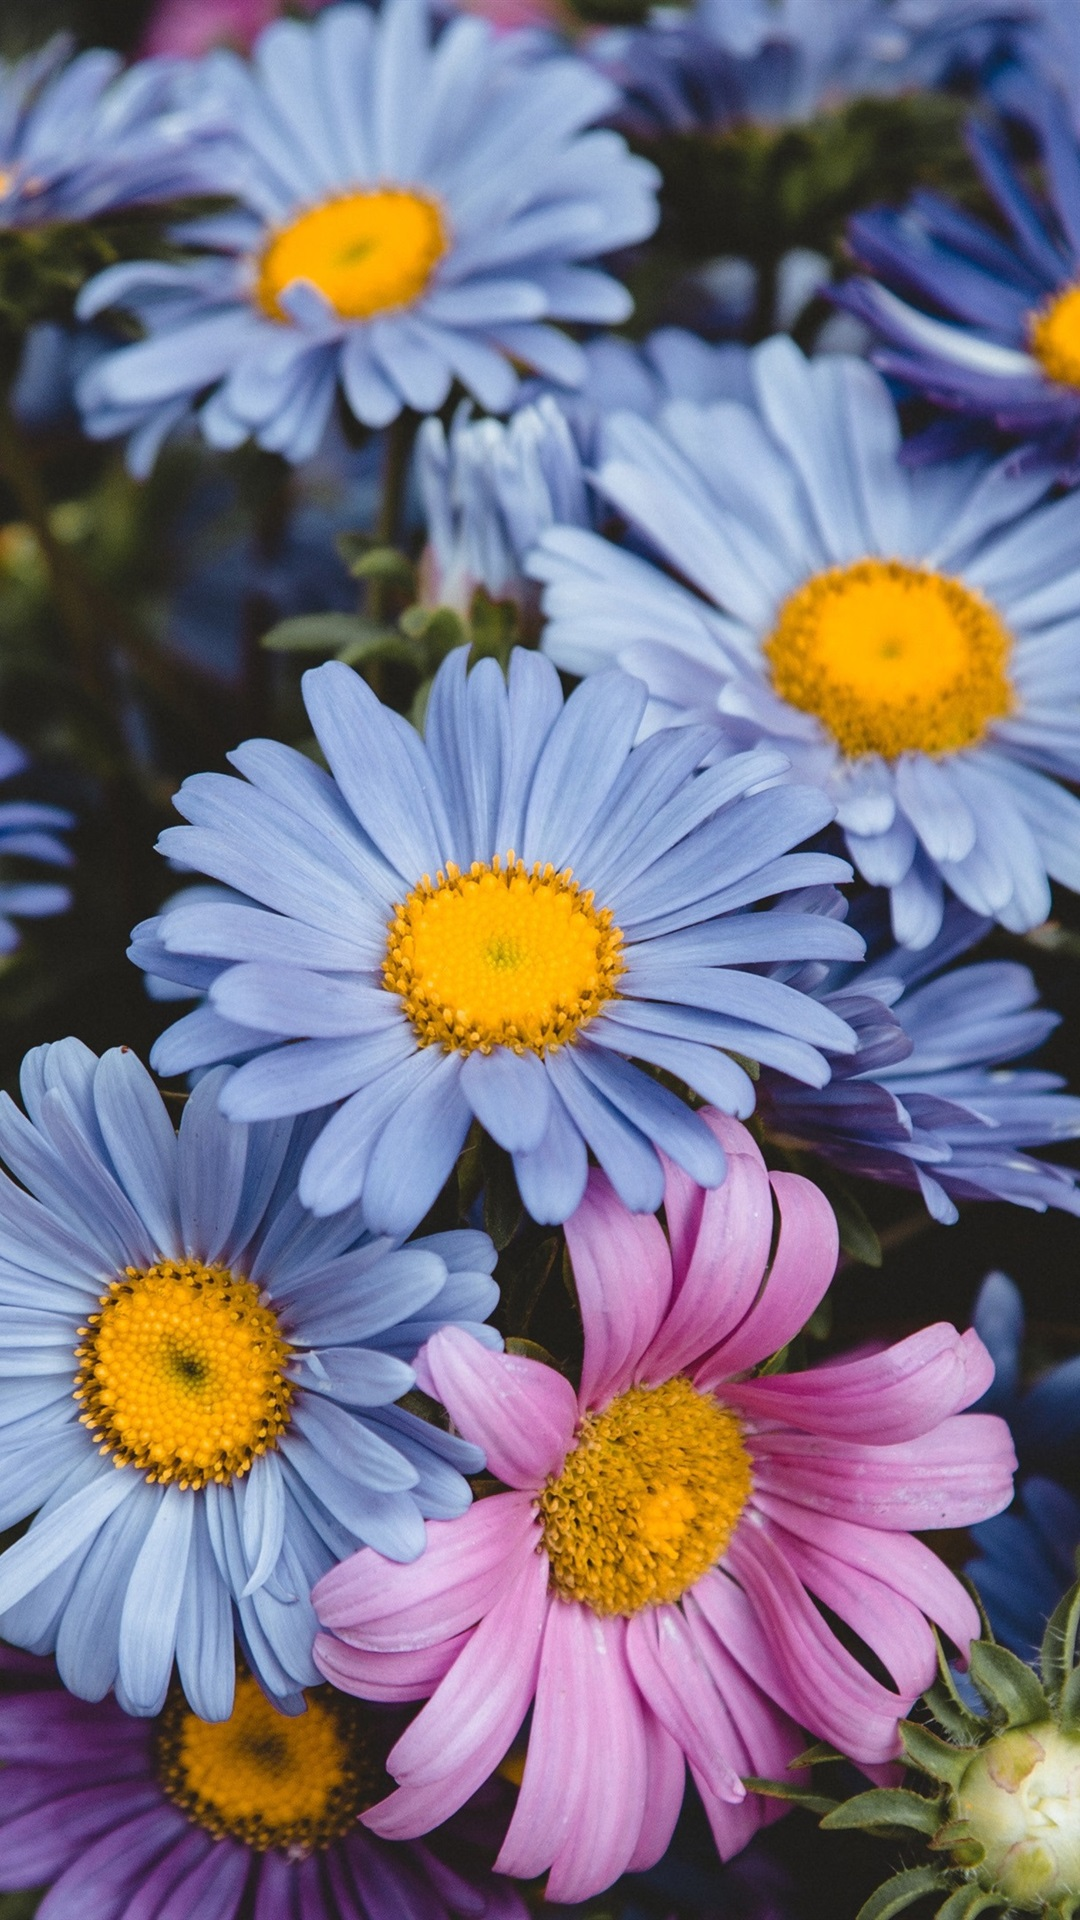 wallpaper blue and pink flowers daisy 3840x2160 uhd 4k